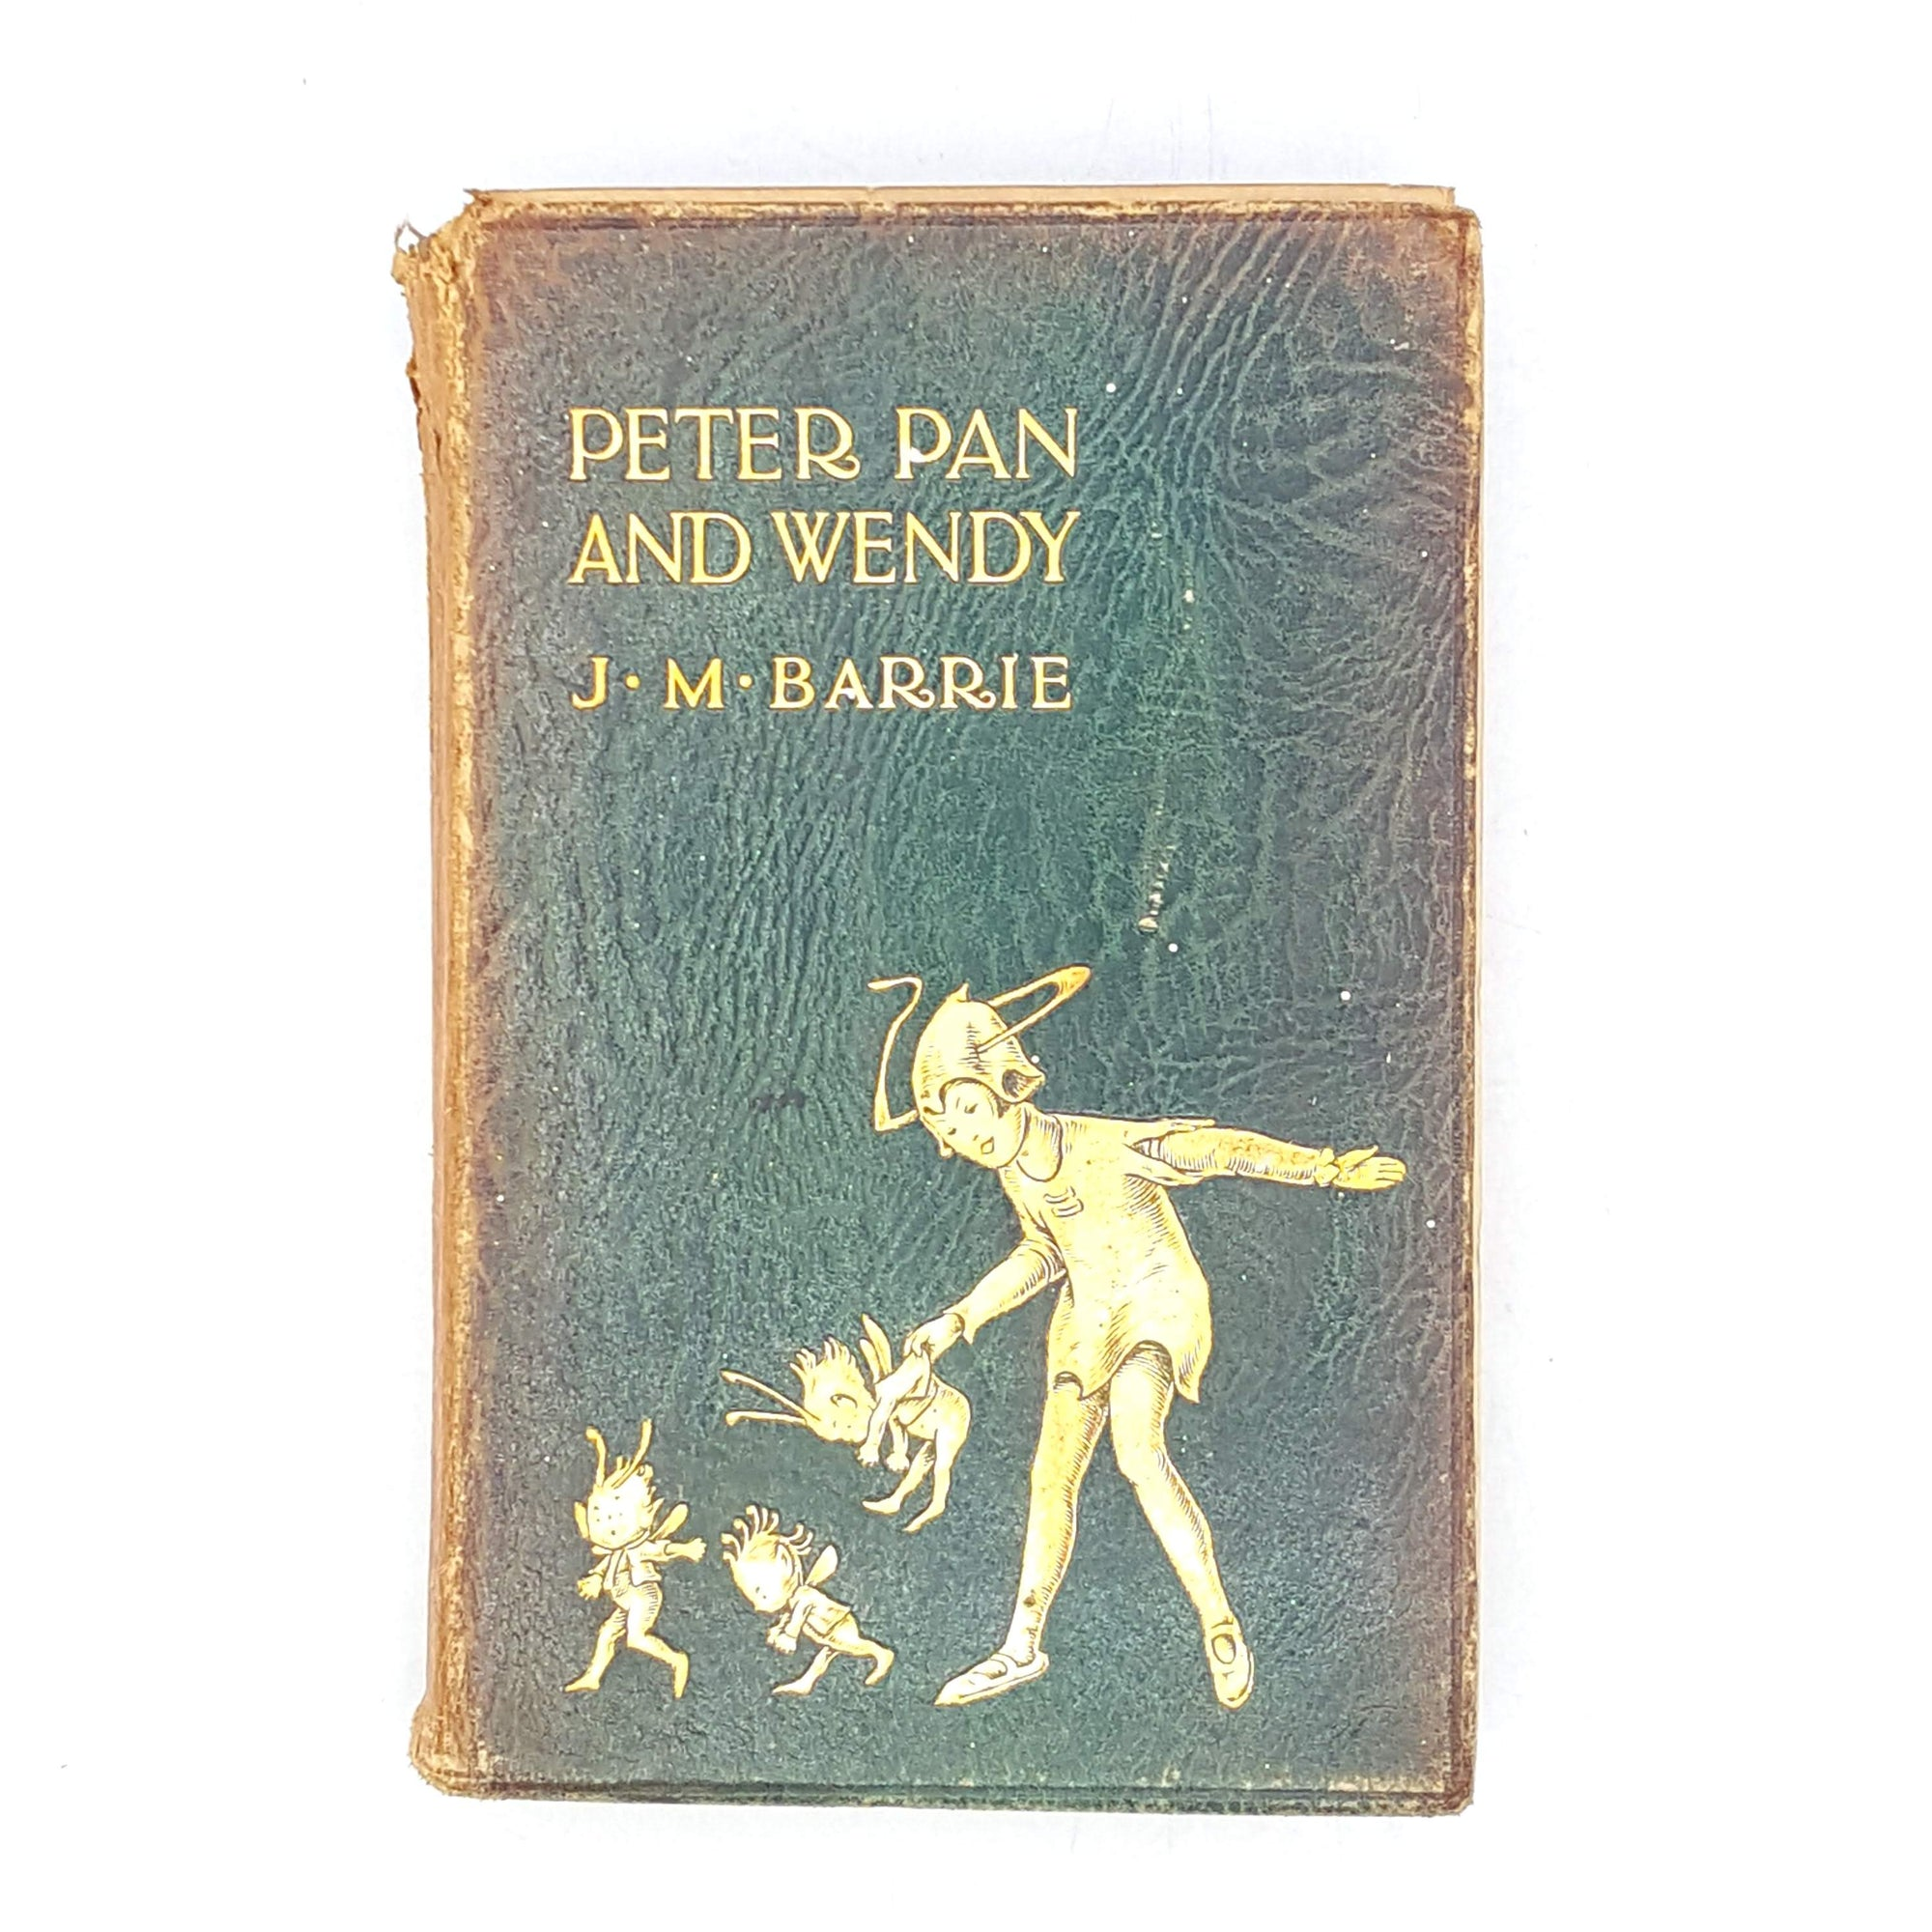 classics-wendy-rare-old-books-jmbarrie-green-hodder-country-house-library-collection-peter-pan-thrift-vintage-